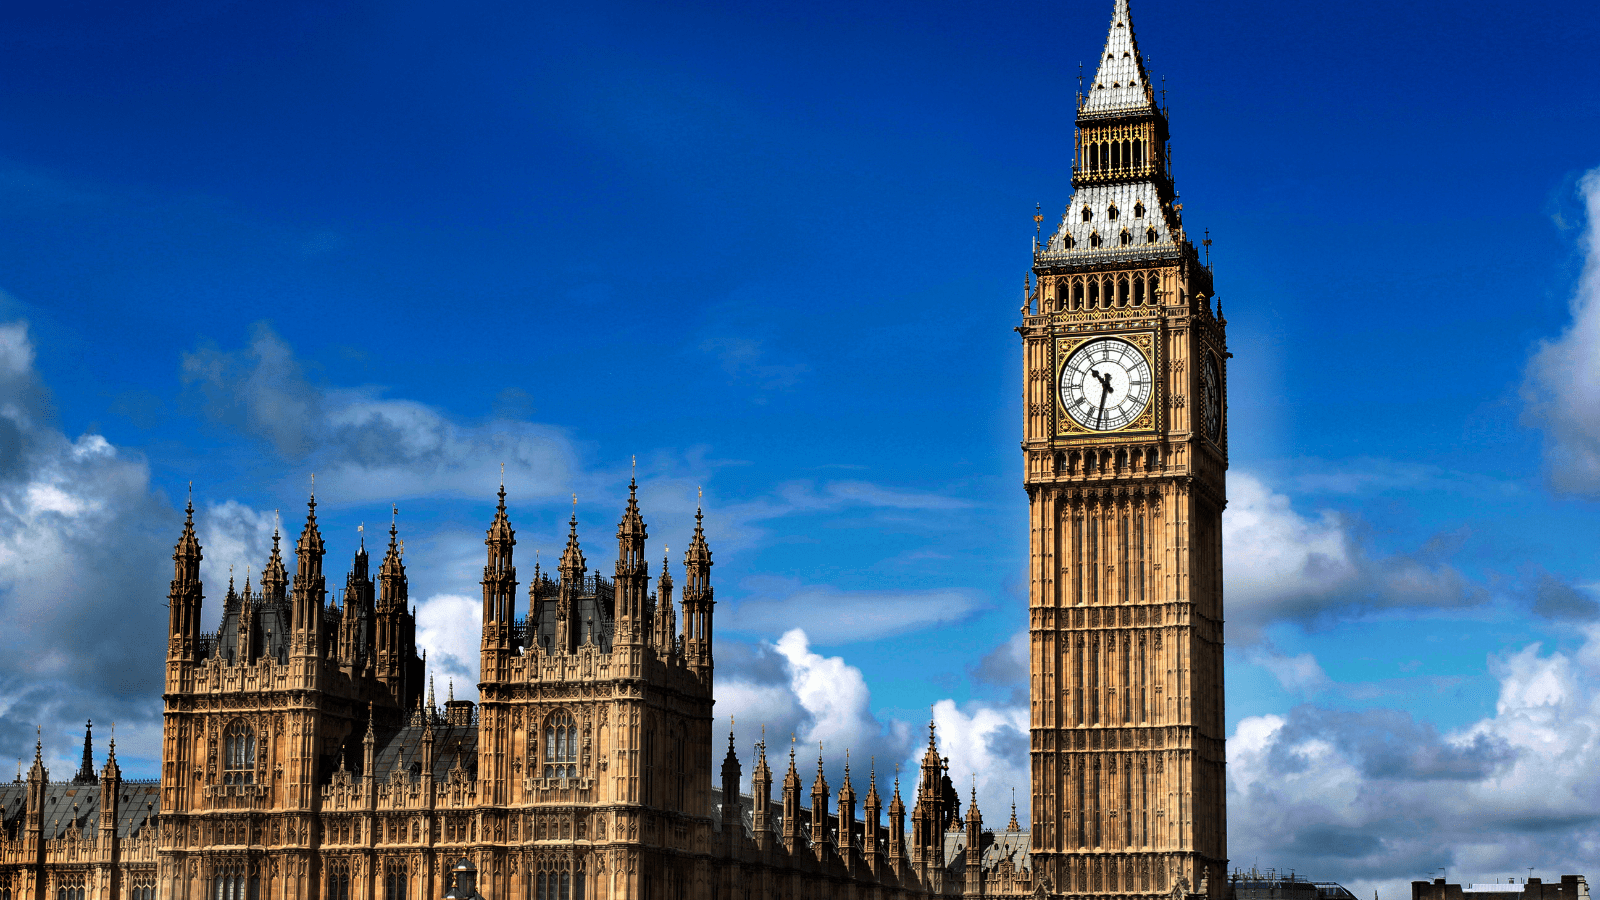 Big Ben And The House Of Commons In London, United Kingdom